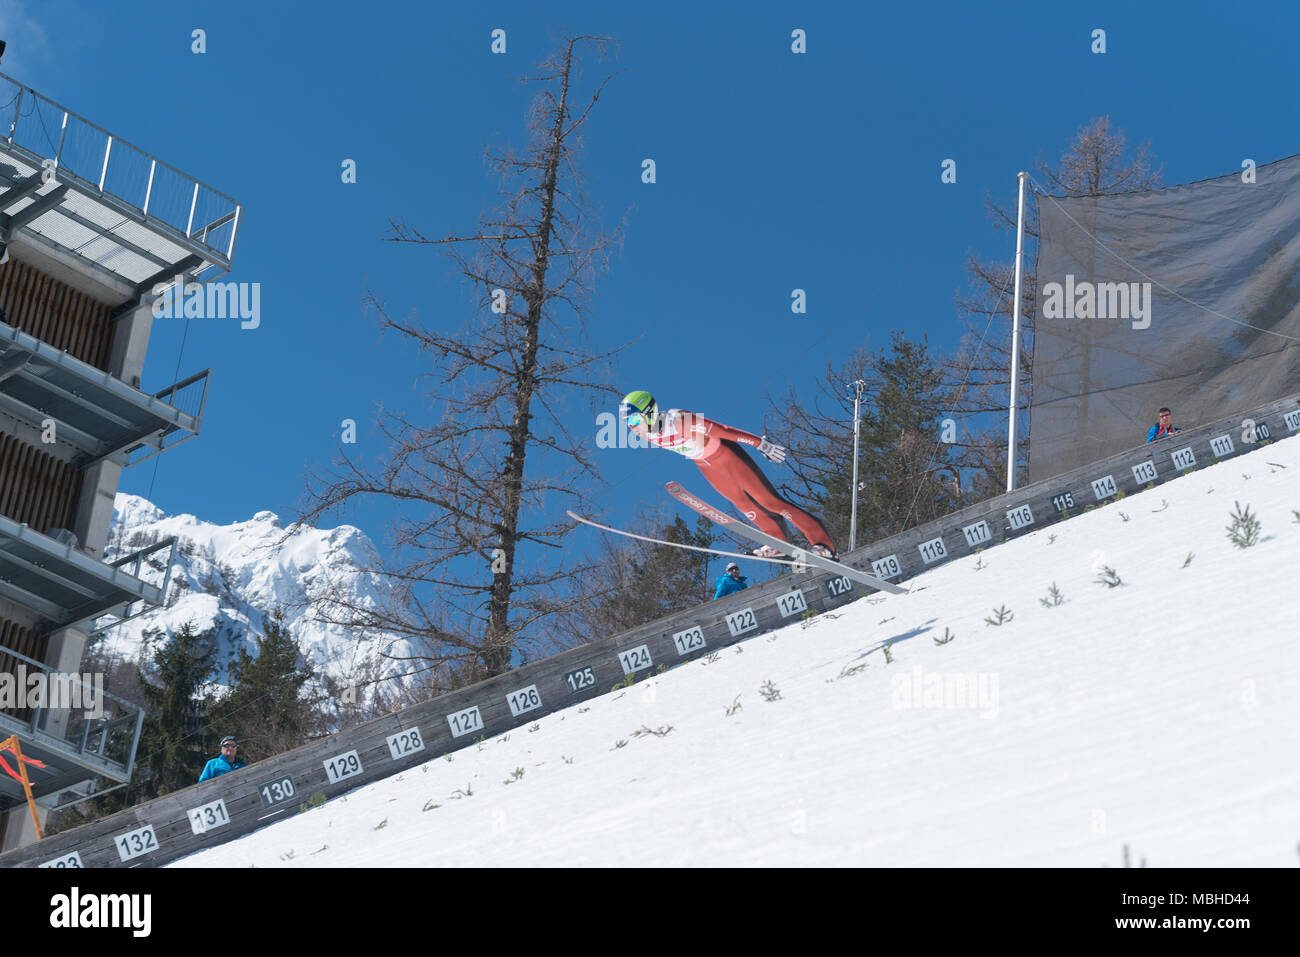 PLANICA, SLOVENIA - MARCH 24 2018 : Fis World Cup Ski Jumping Final - RHOADS William USA - Stock Image